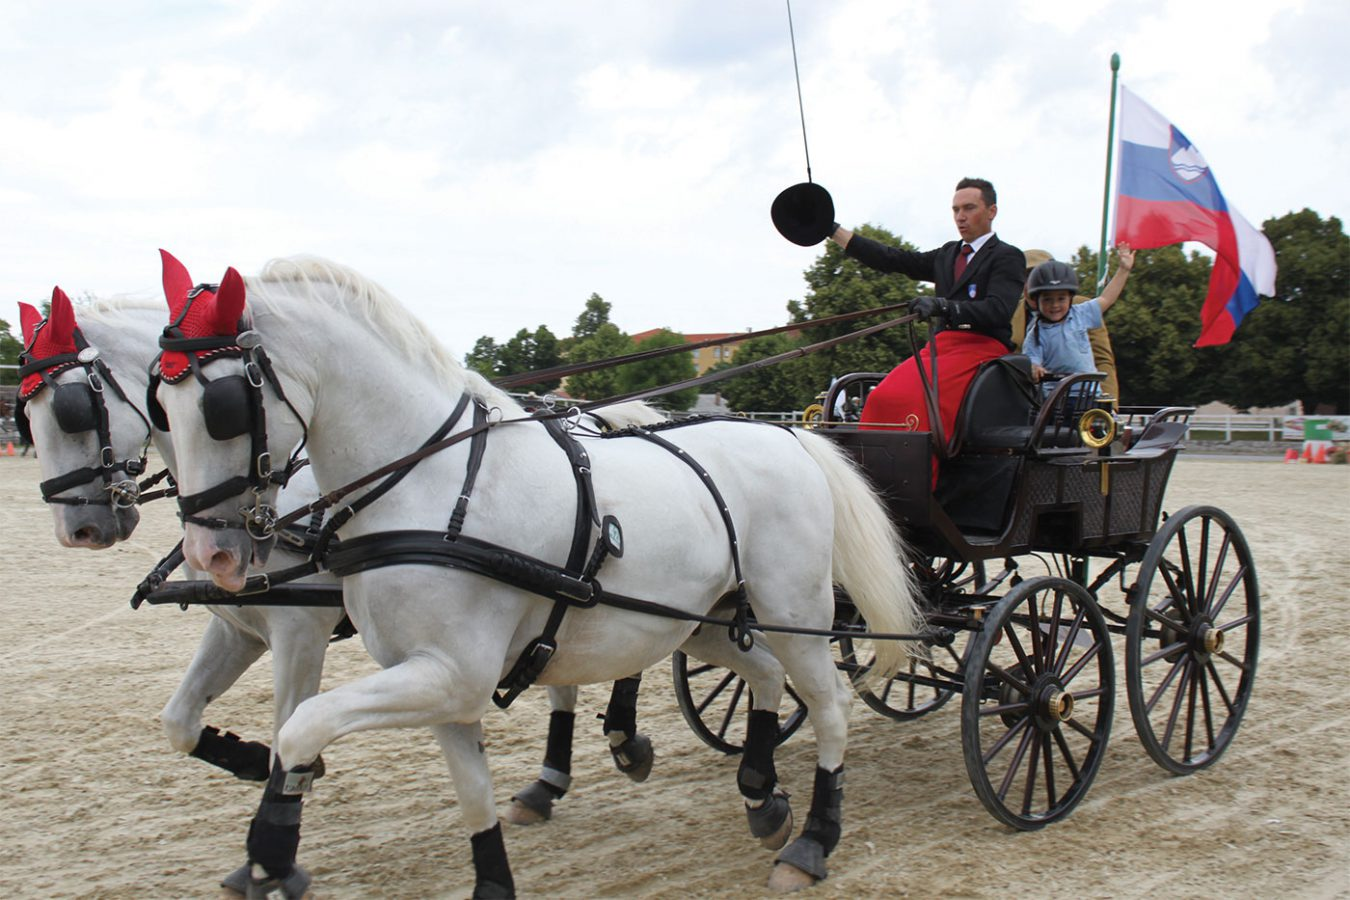 Local Excursions Lipizzaner Horses Stud Farm Lipica Asa Residence Private Villa Kras Slovenia